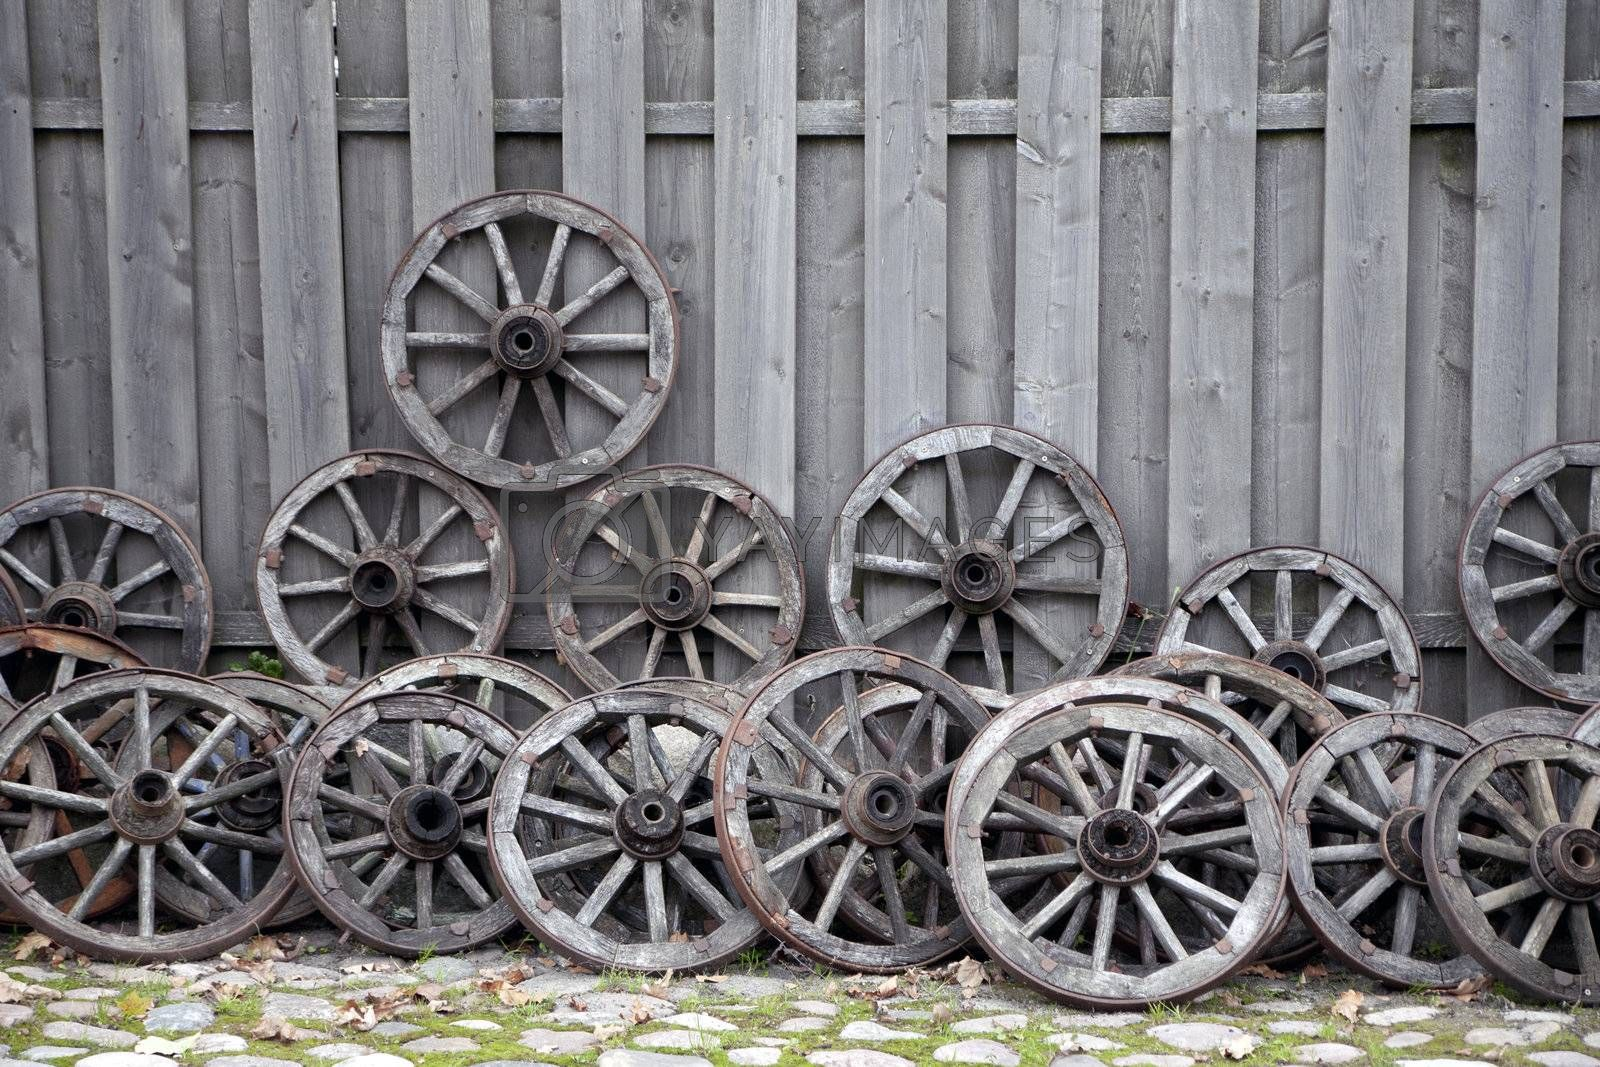 Bunch of old wooden carriage wheels against wooden fence